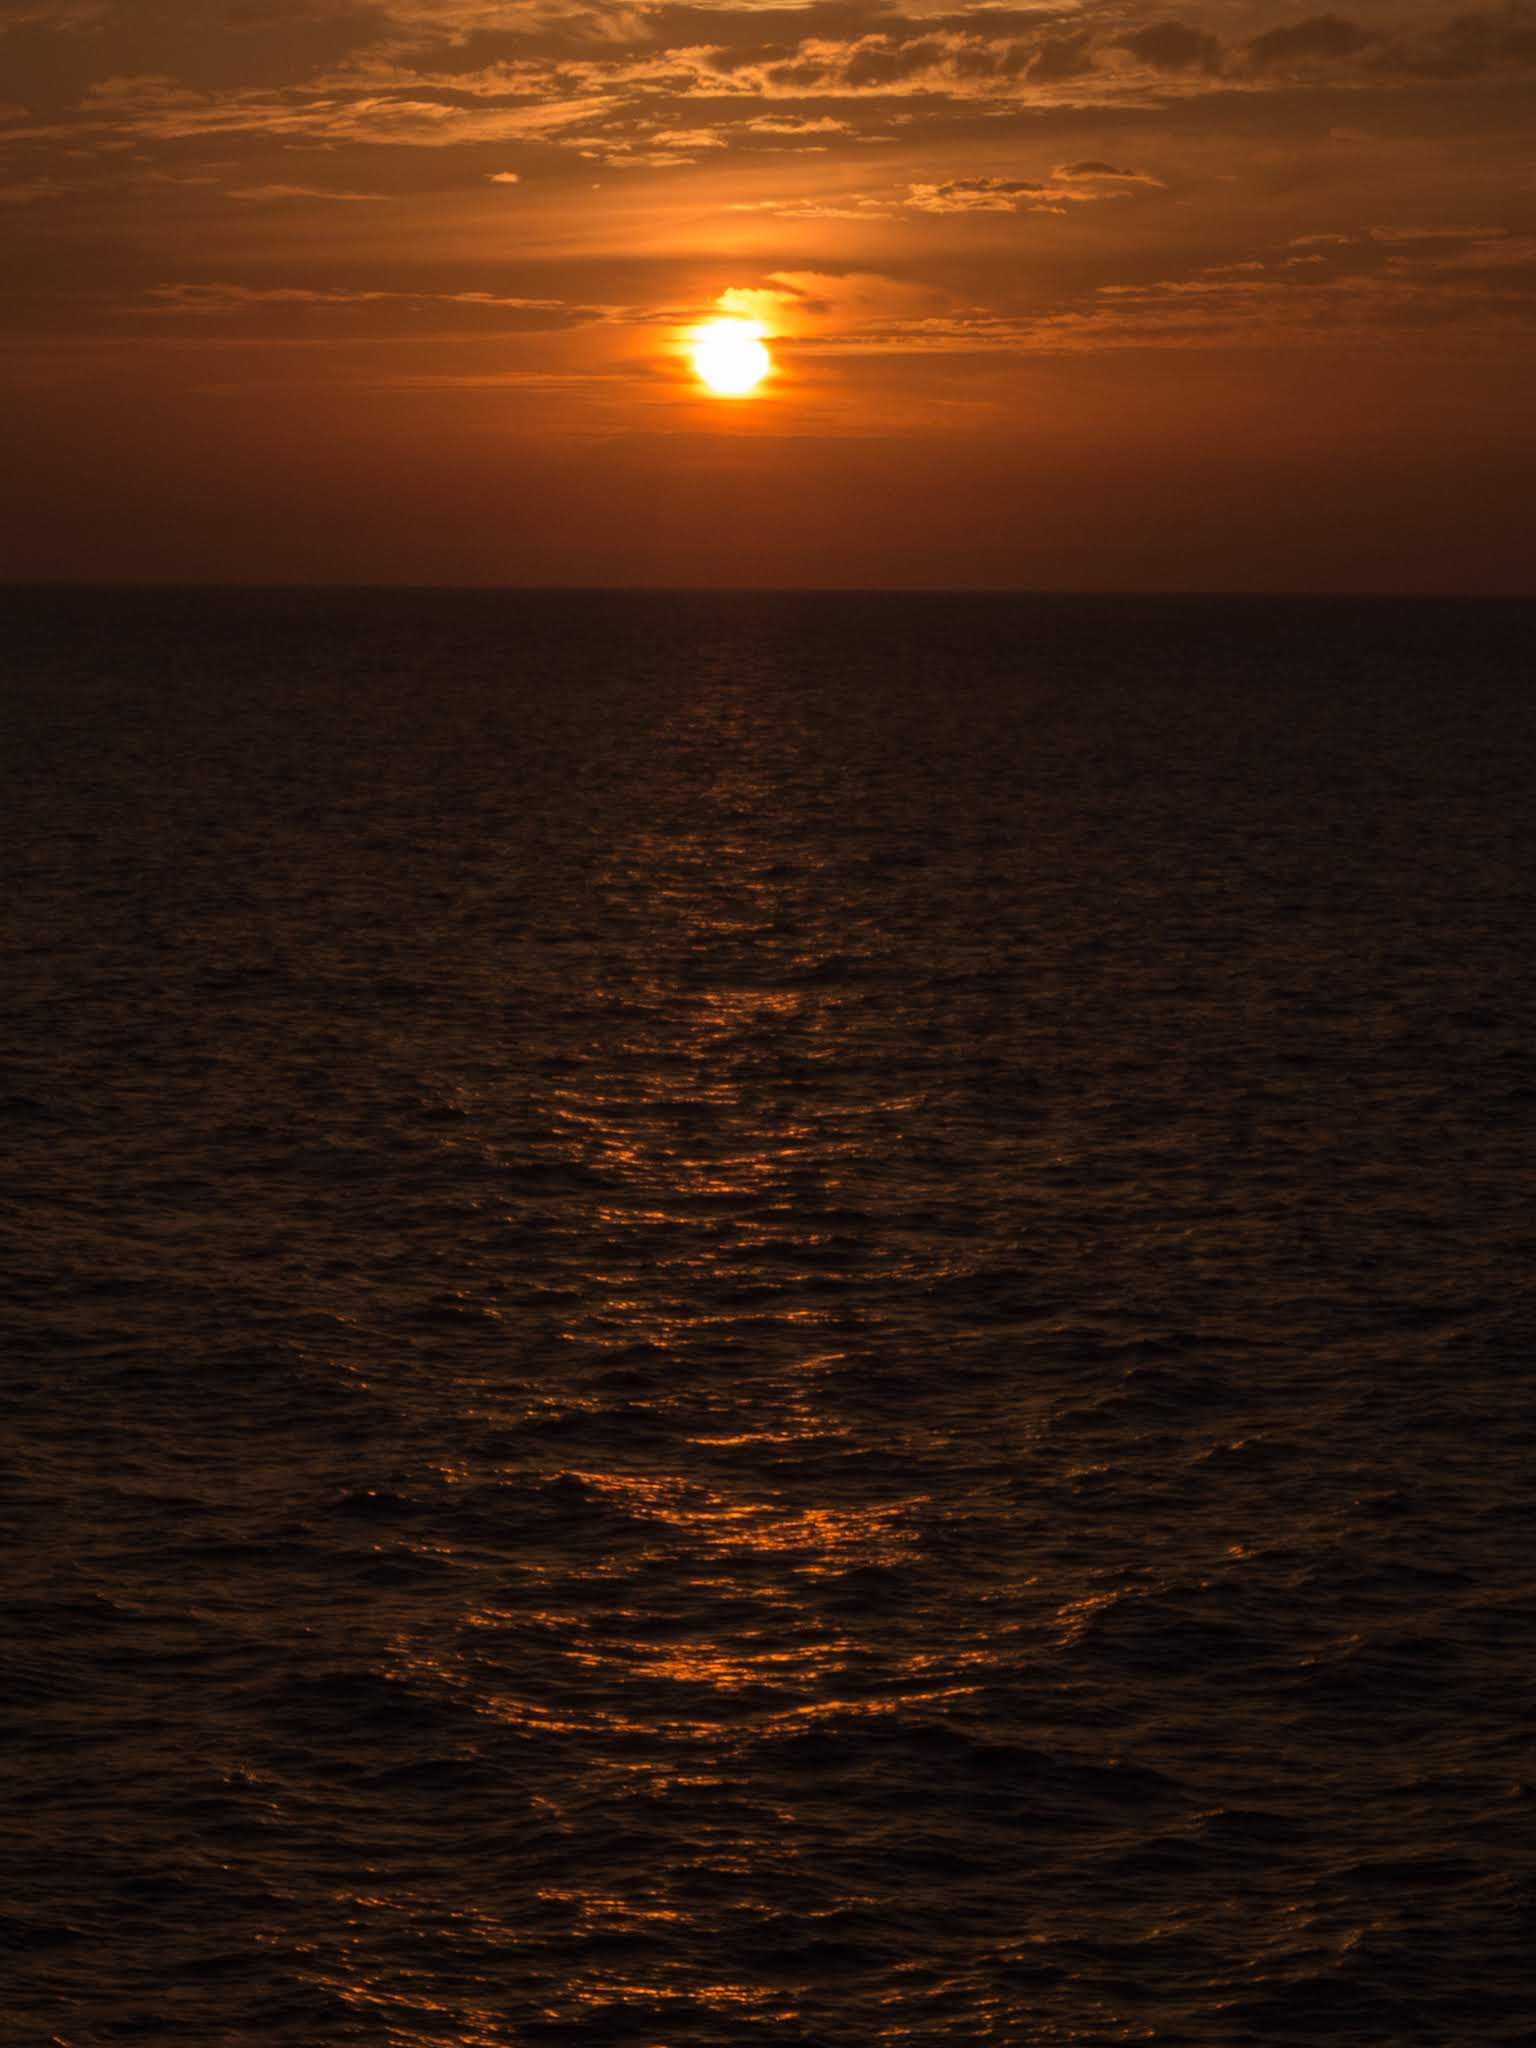 Sun setting on the Atlantic Ocean in October.